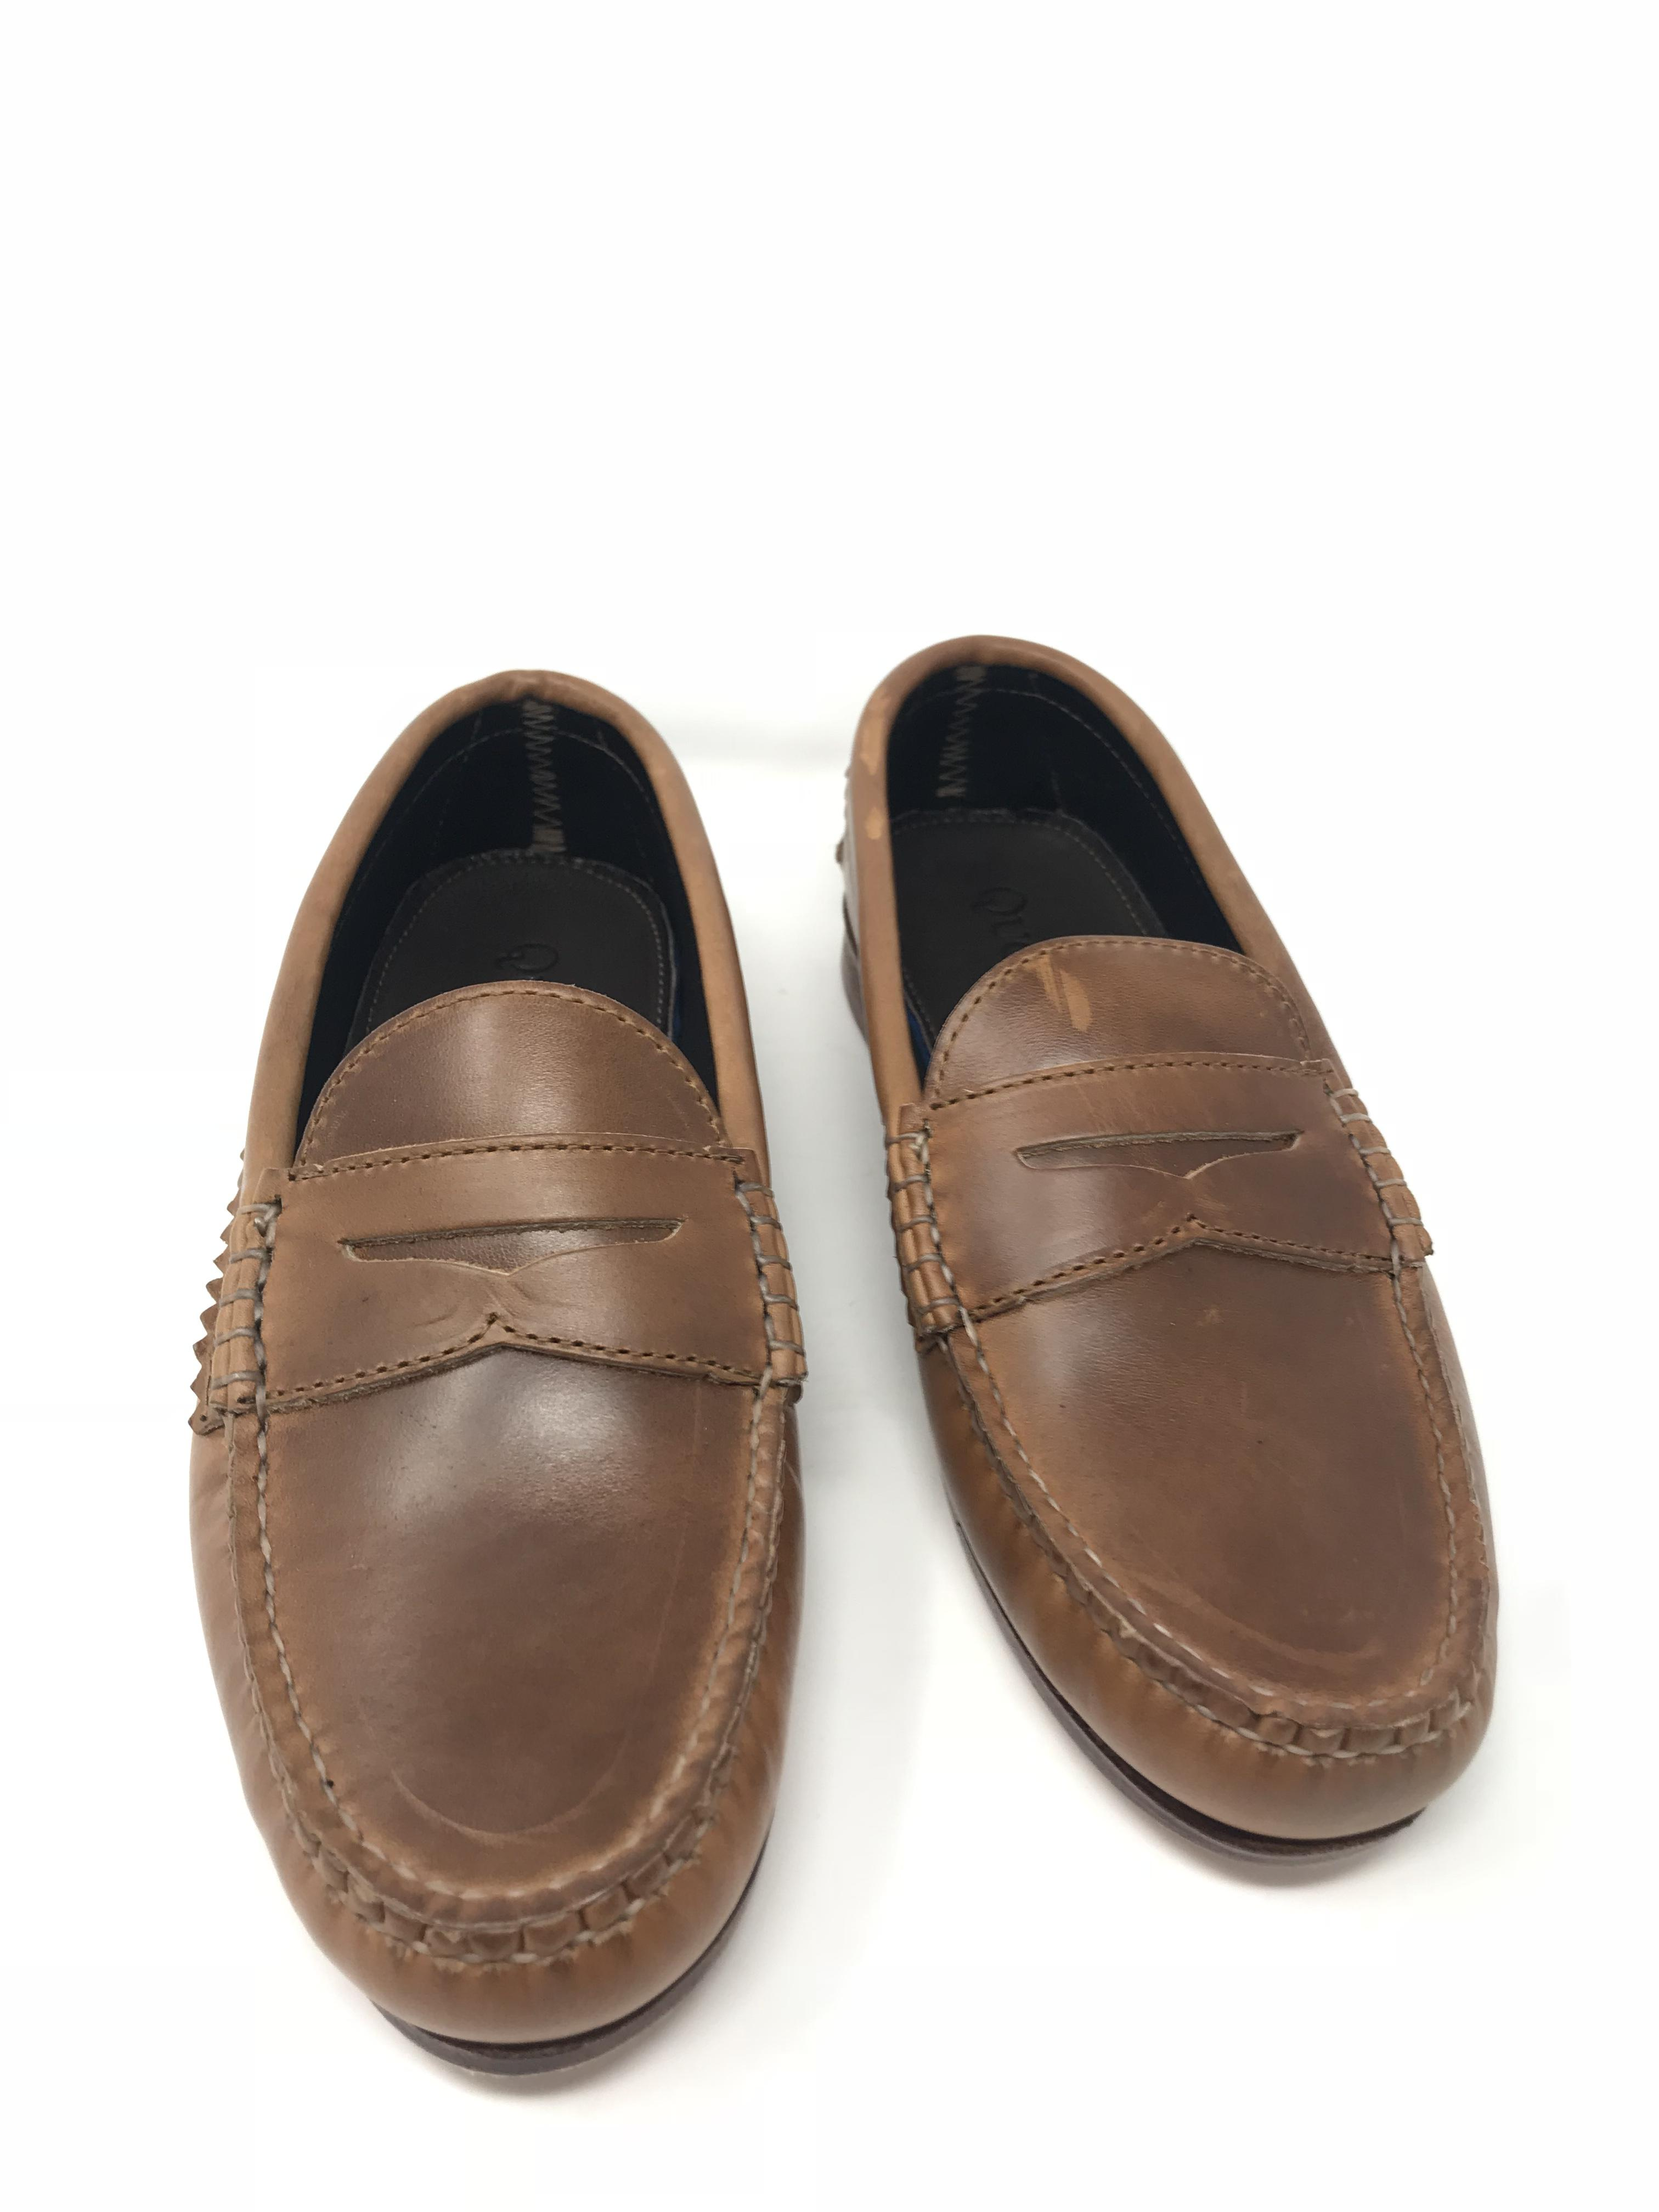 Quoddy shoe Shoes Price: $67.99